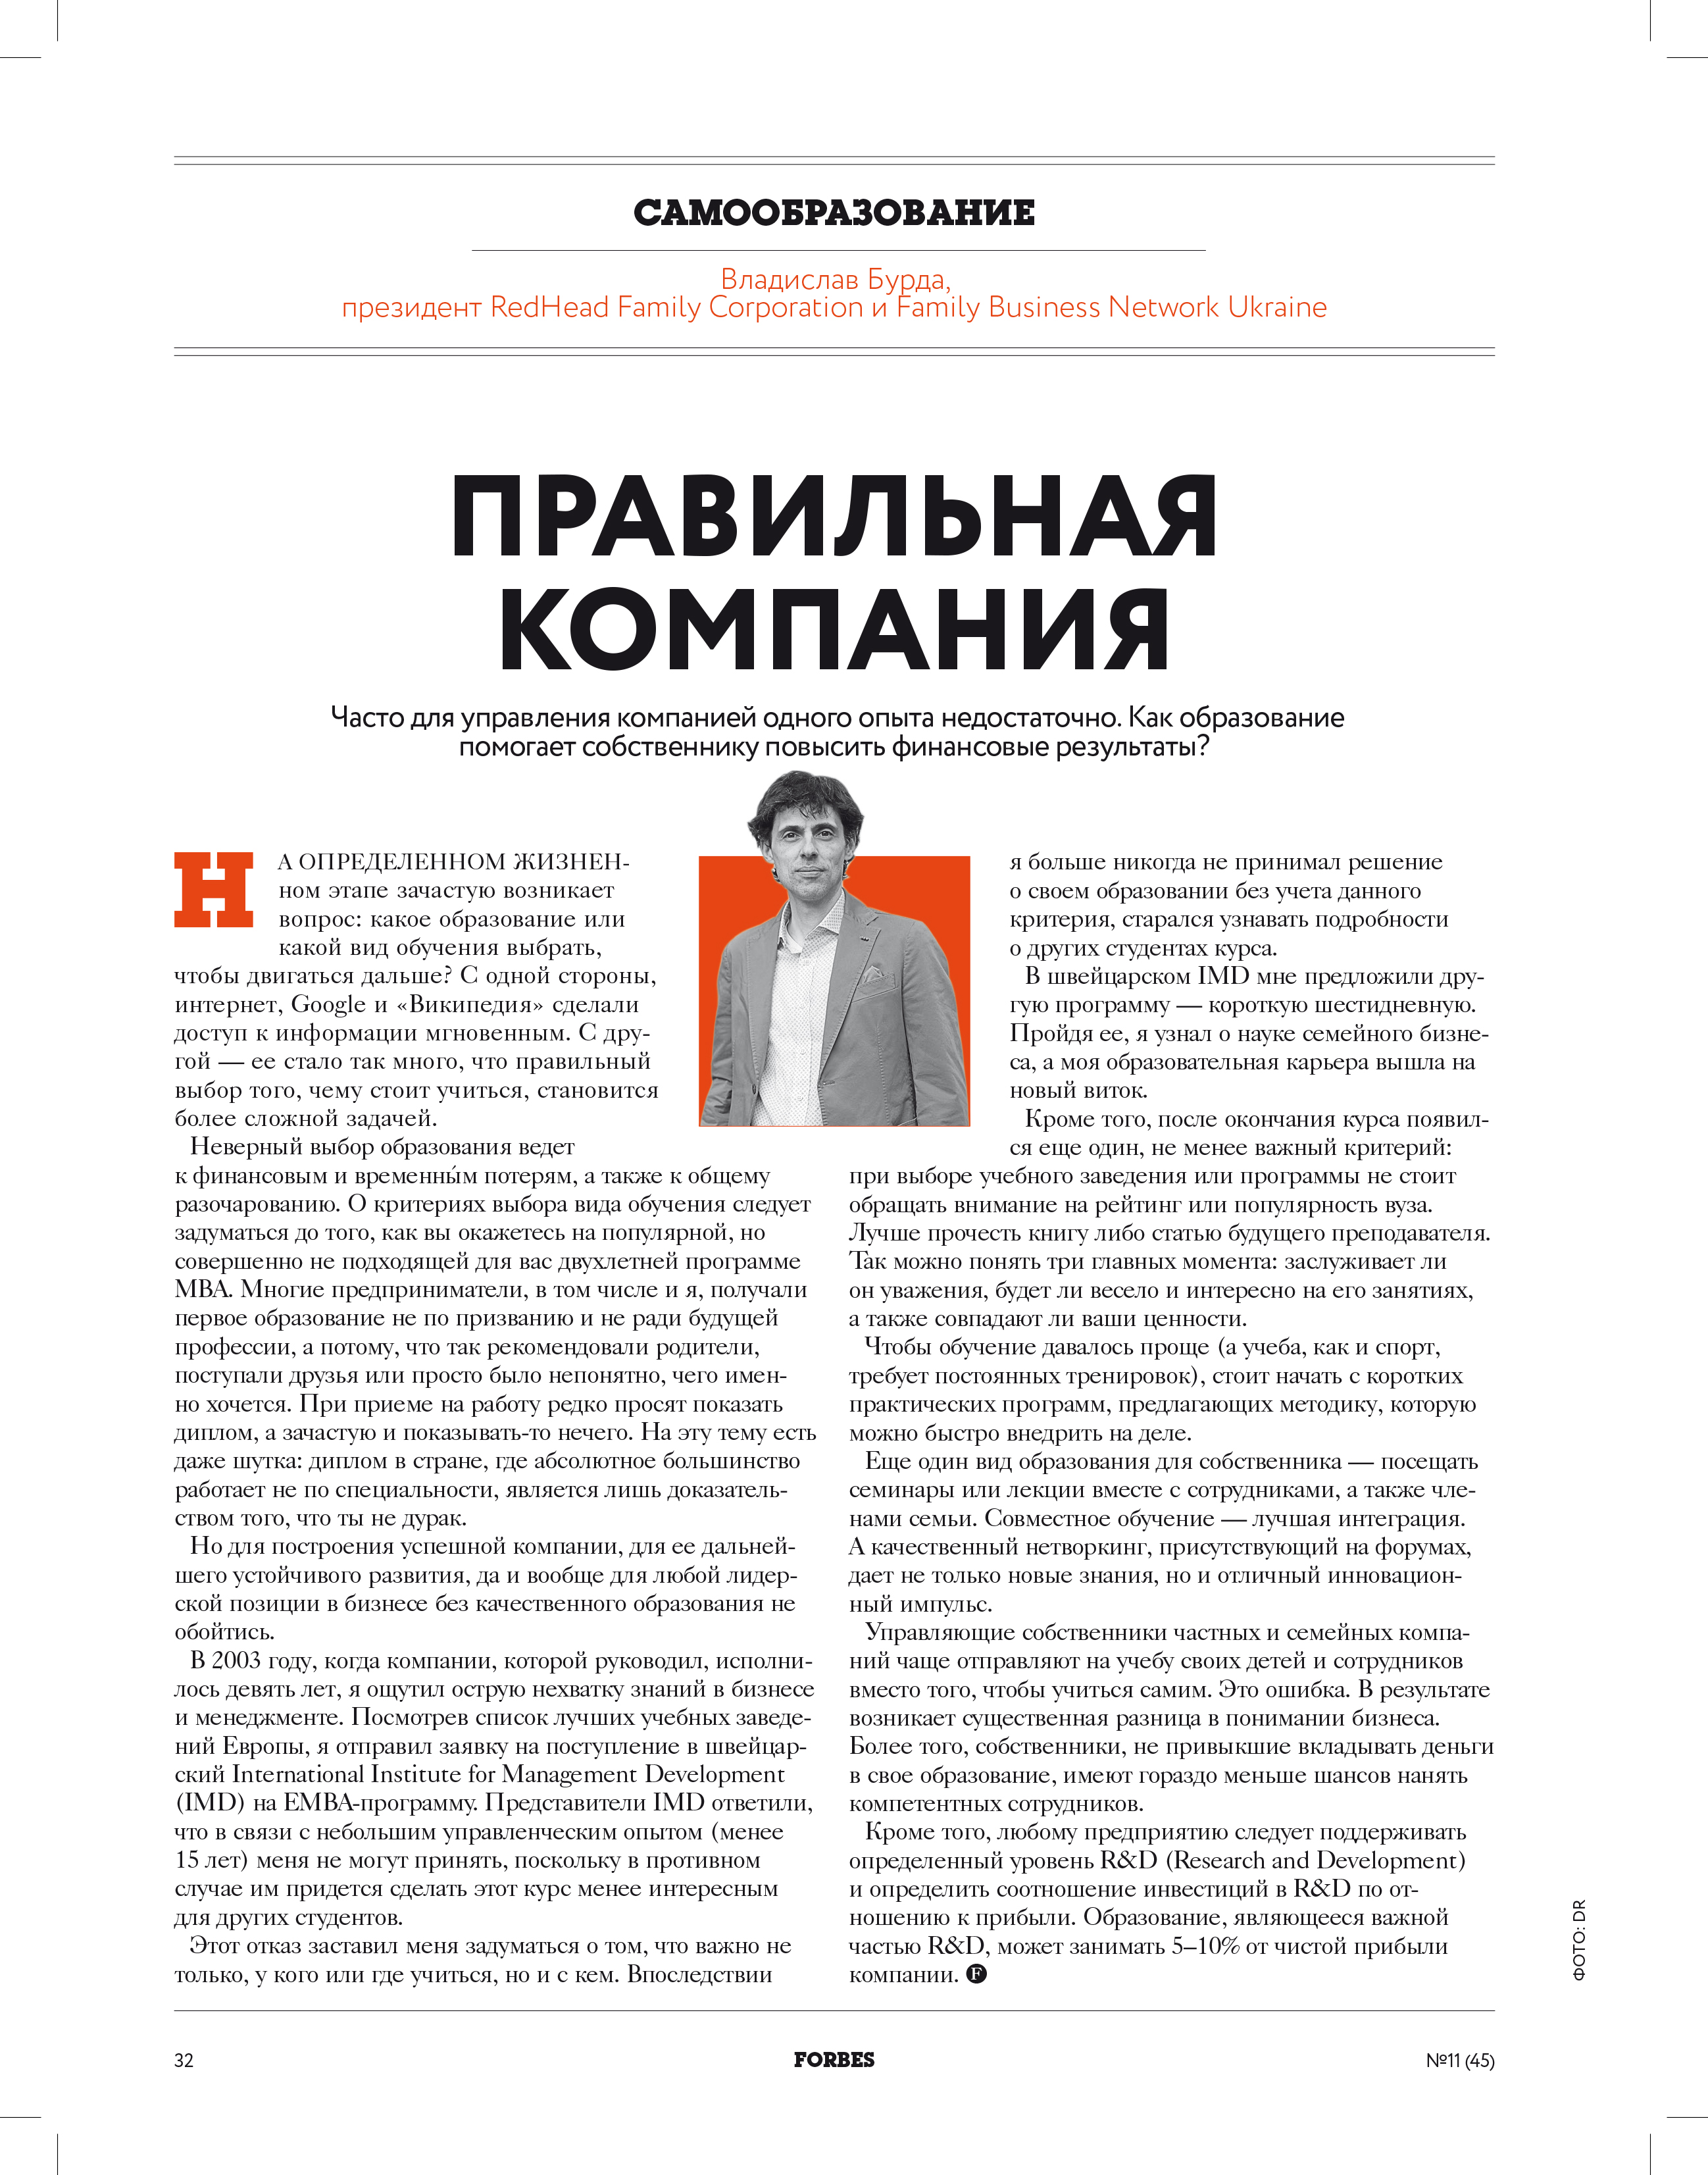 Forbes_2014_11